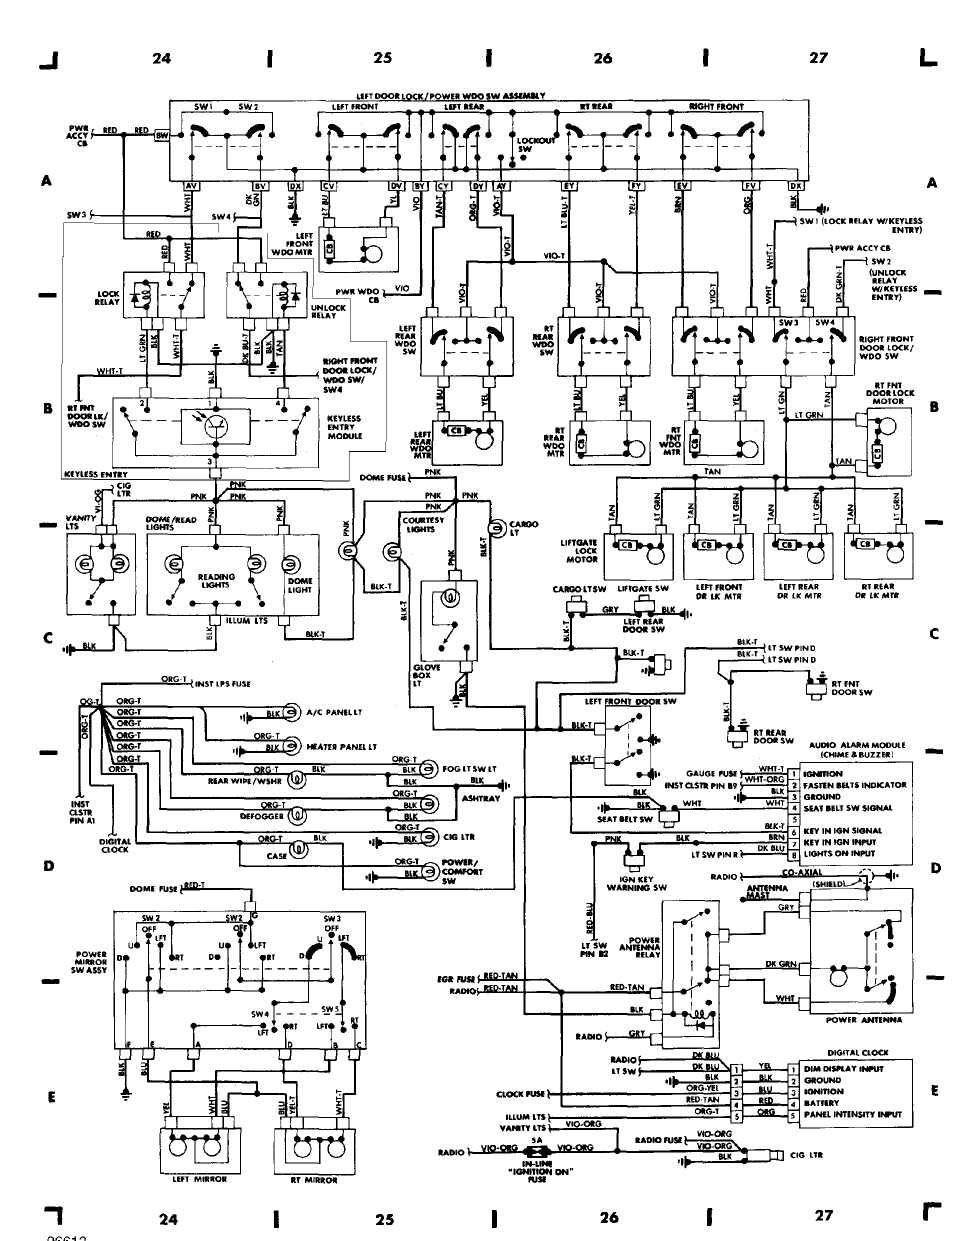 wiring_diagrams_html_61f5e0ad wiring diagrams 1984 1991 jeep cherokee (xj) jeep 2000 Jeep Cherokee Wiring Schematic at alyssarenee.co